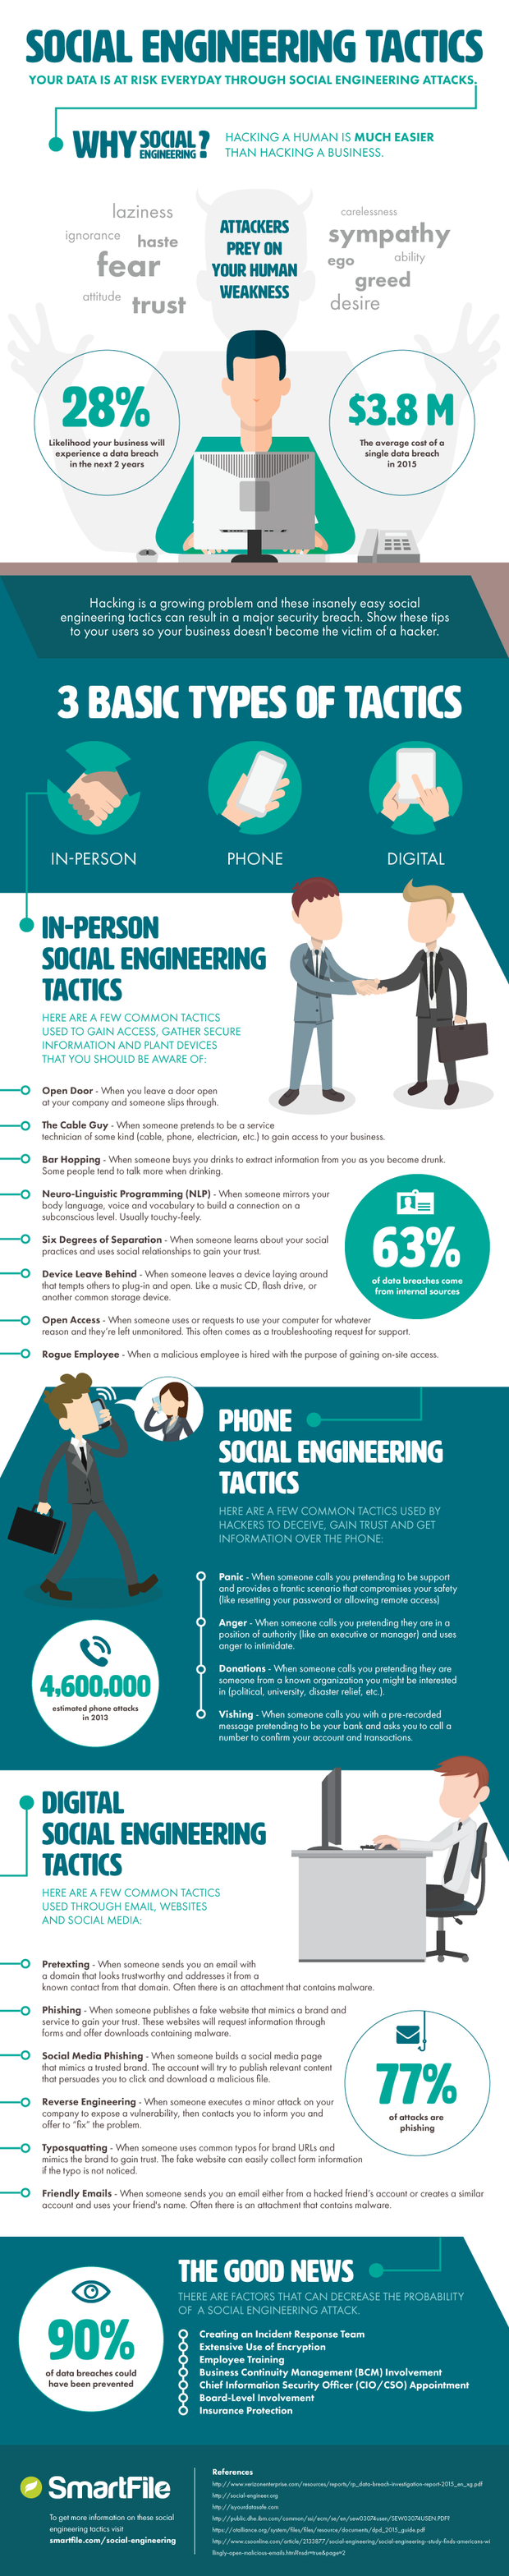 Social Engineering 101: 18 ways to hack a human [INFOGRAPHIC]